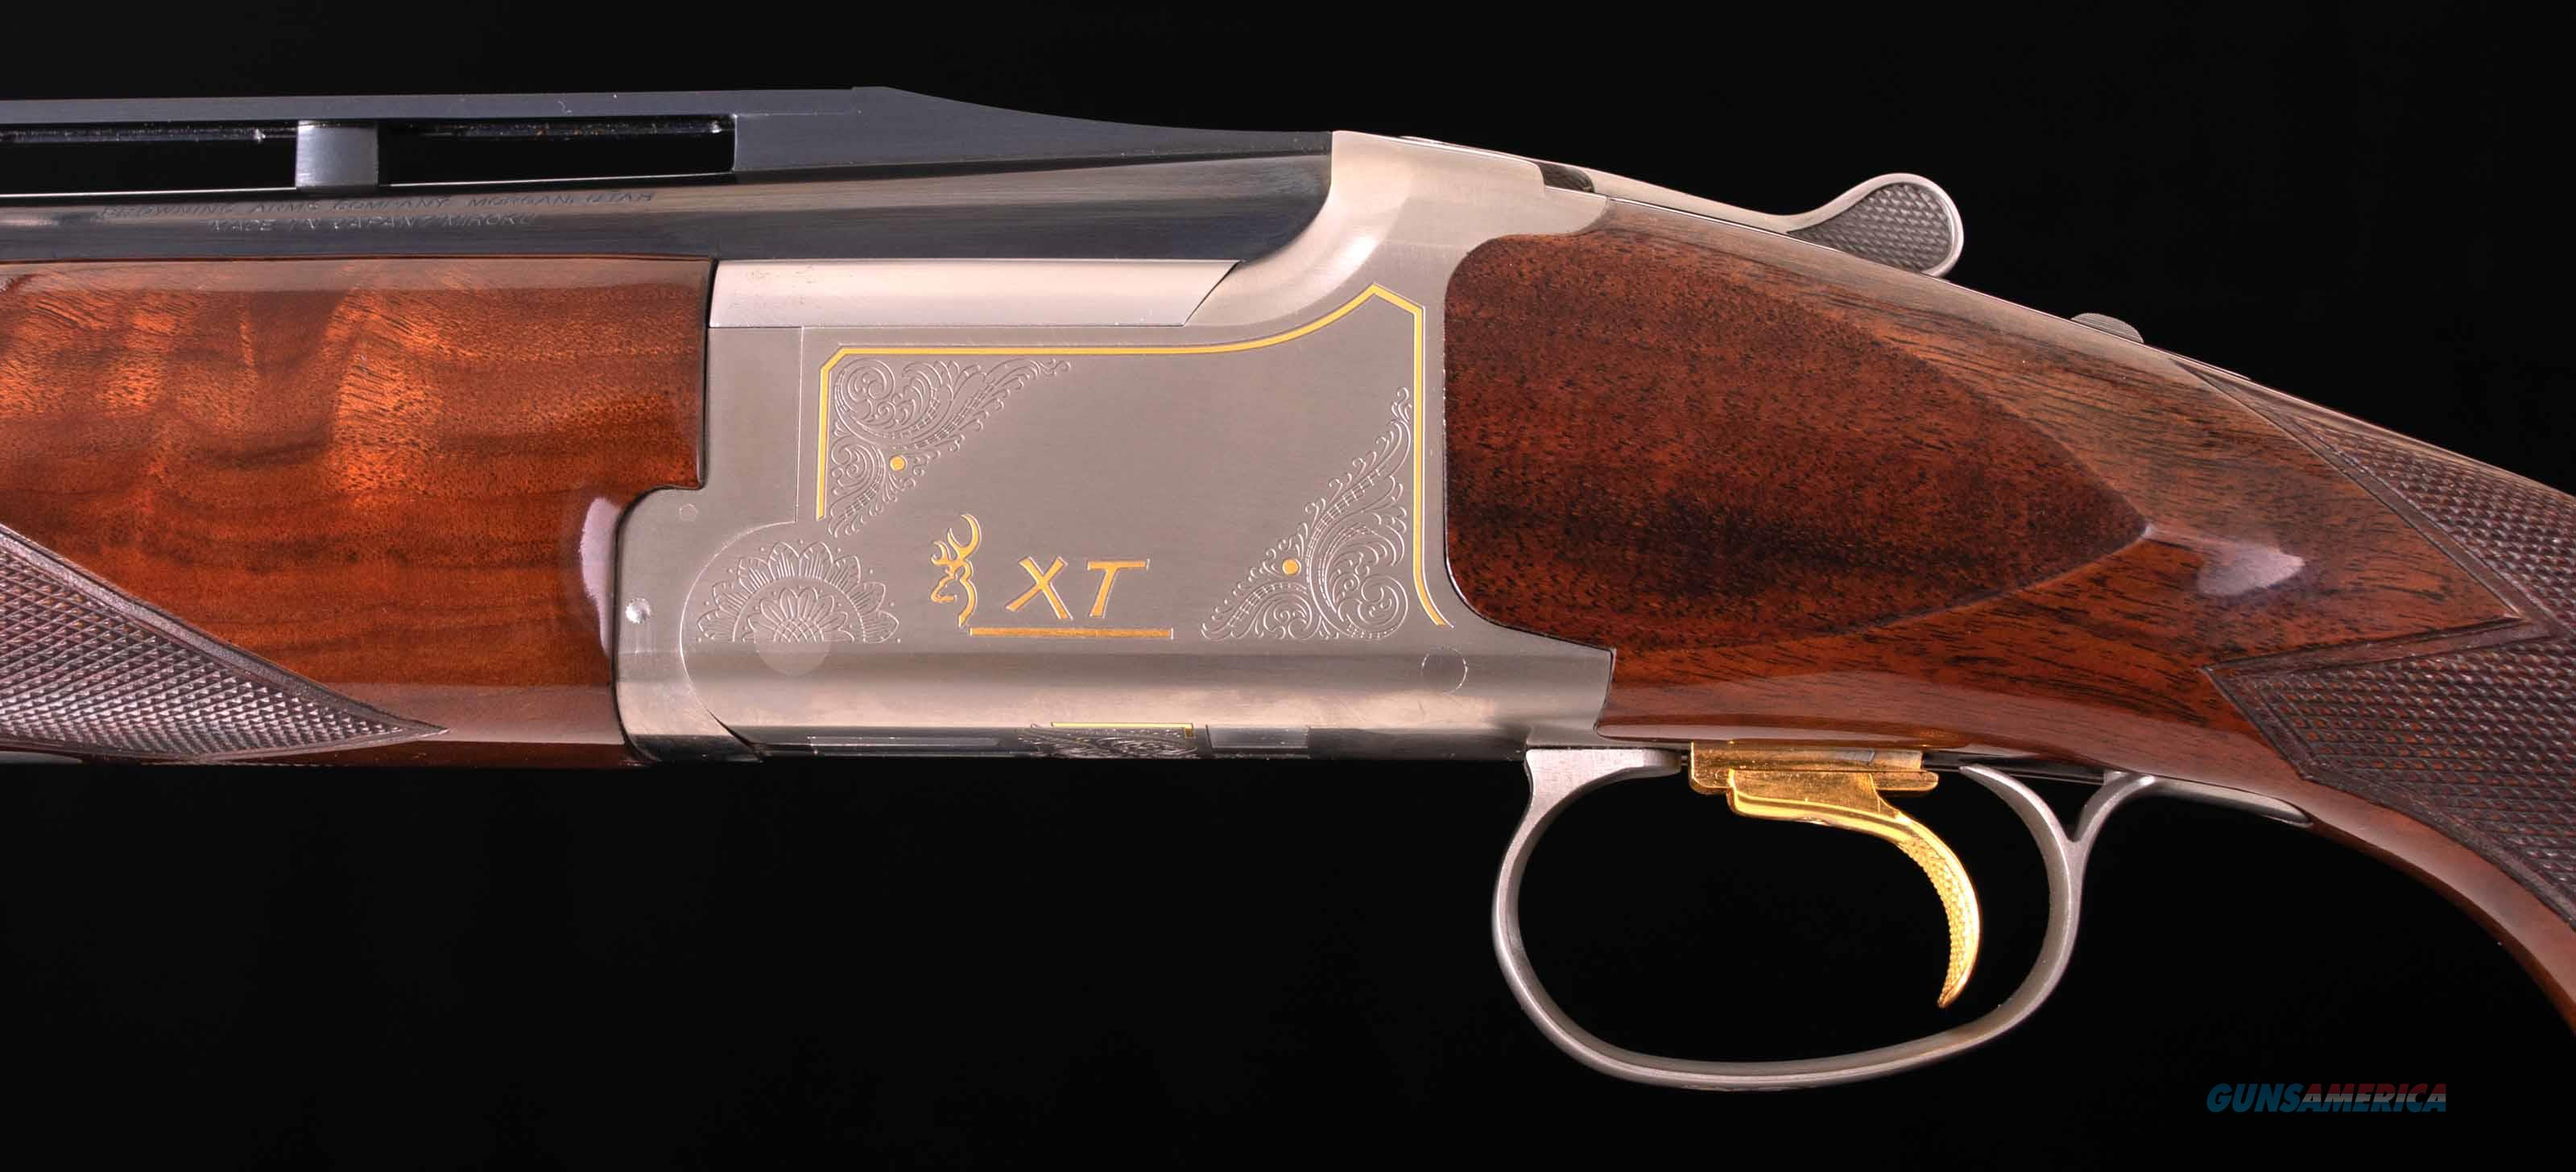 Browning Citori XT 12 Gauge – AS NEW, CASE, BOX, ADJUSTABLE COMB, vintage firearms inc  Guns > Shotguns > Browning Shotguns > Over Unders > Citori > Trap/Skeet